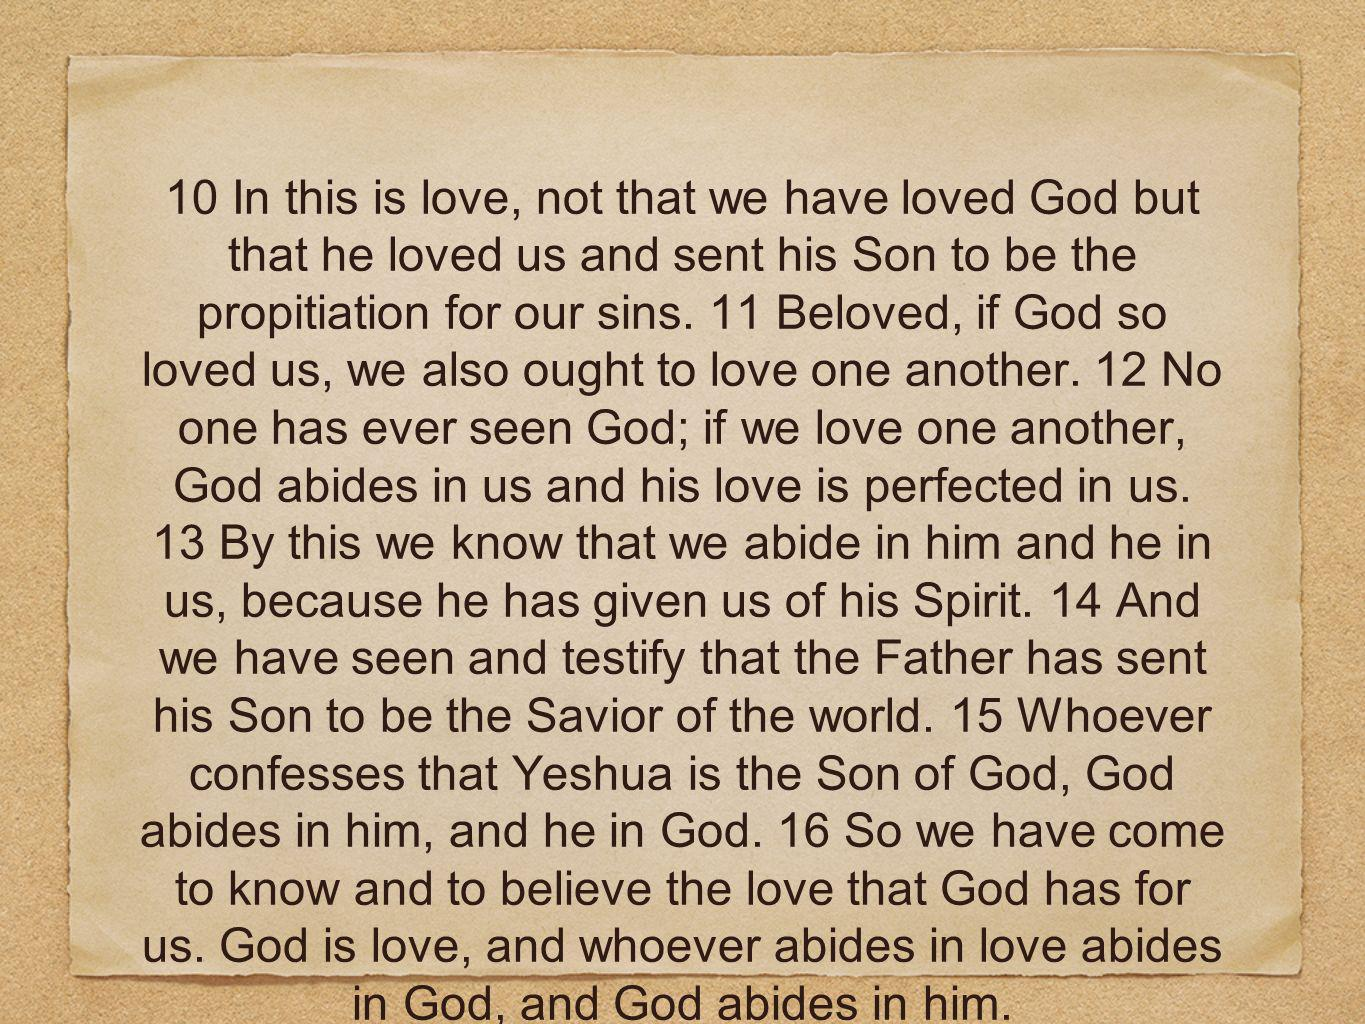 10 In this is love, not that we have loved God but that he loved us and sent his Son to be the propitiation for our sins.